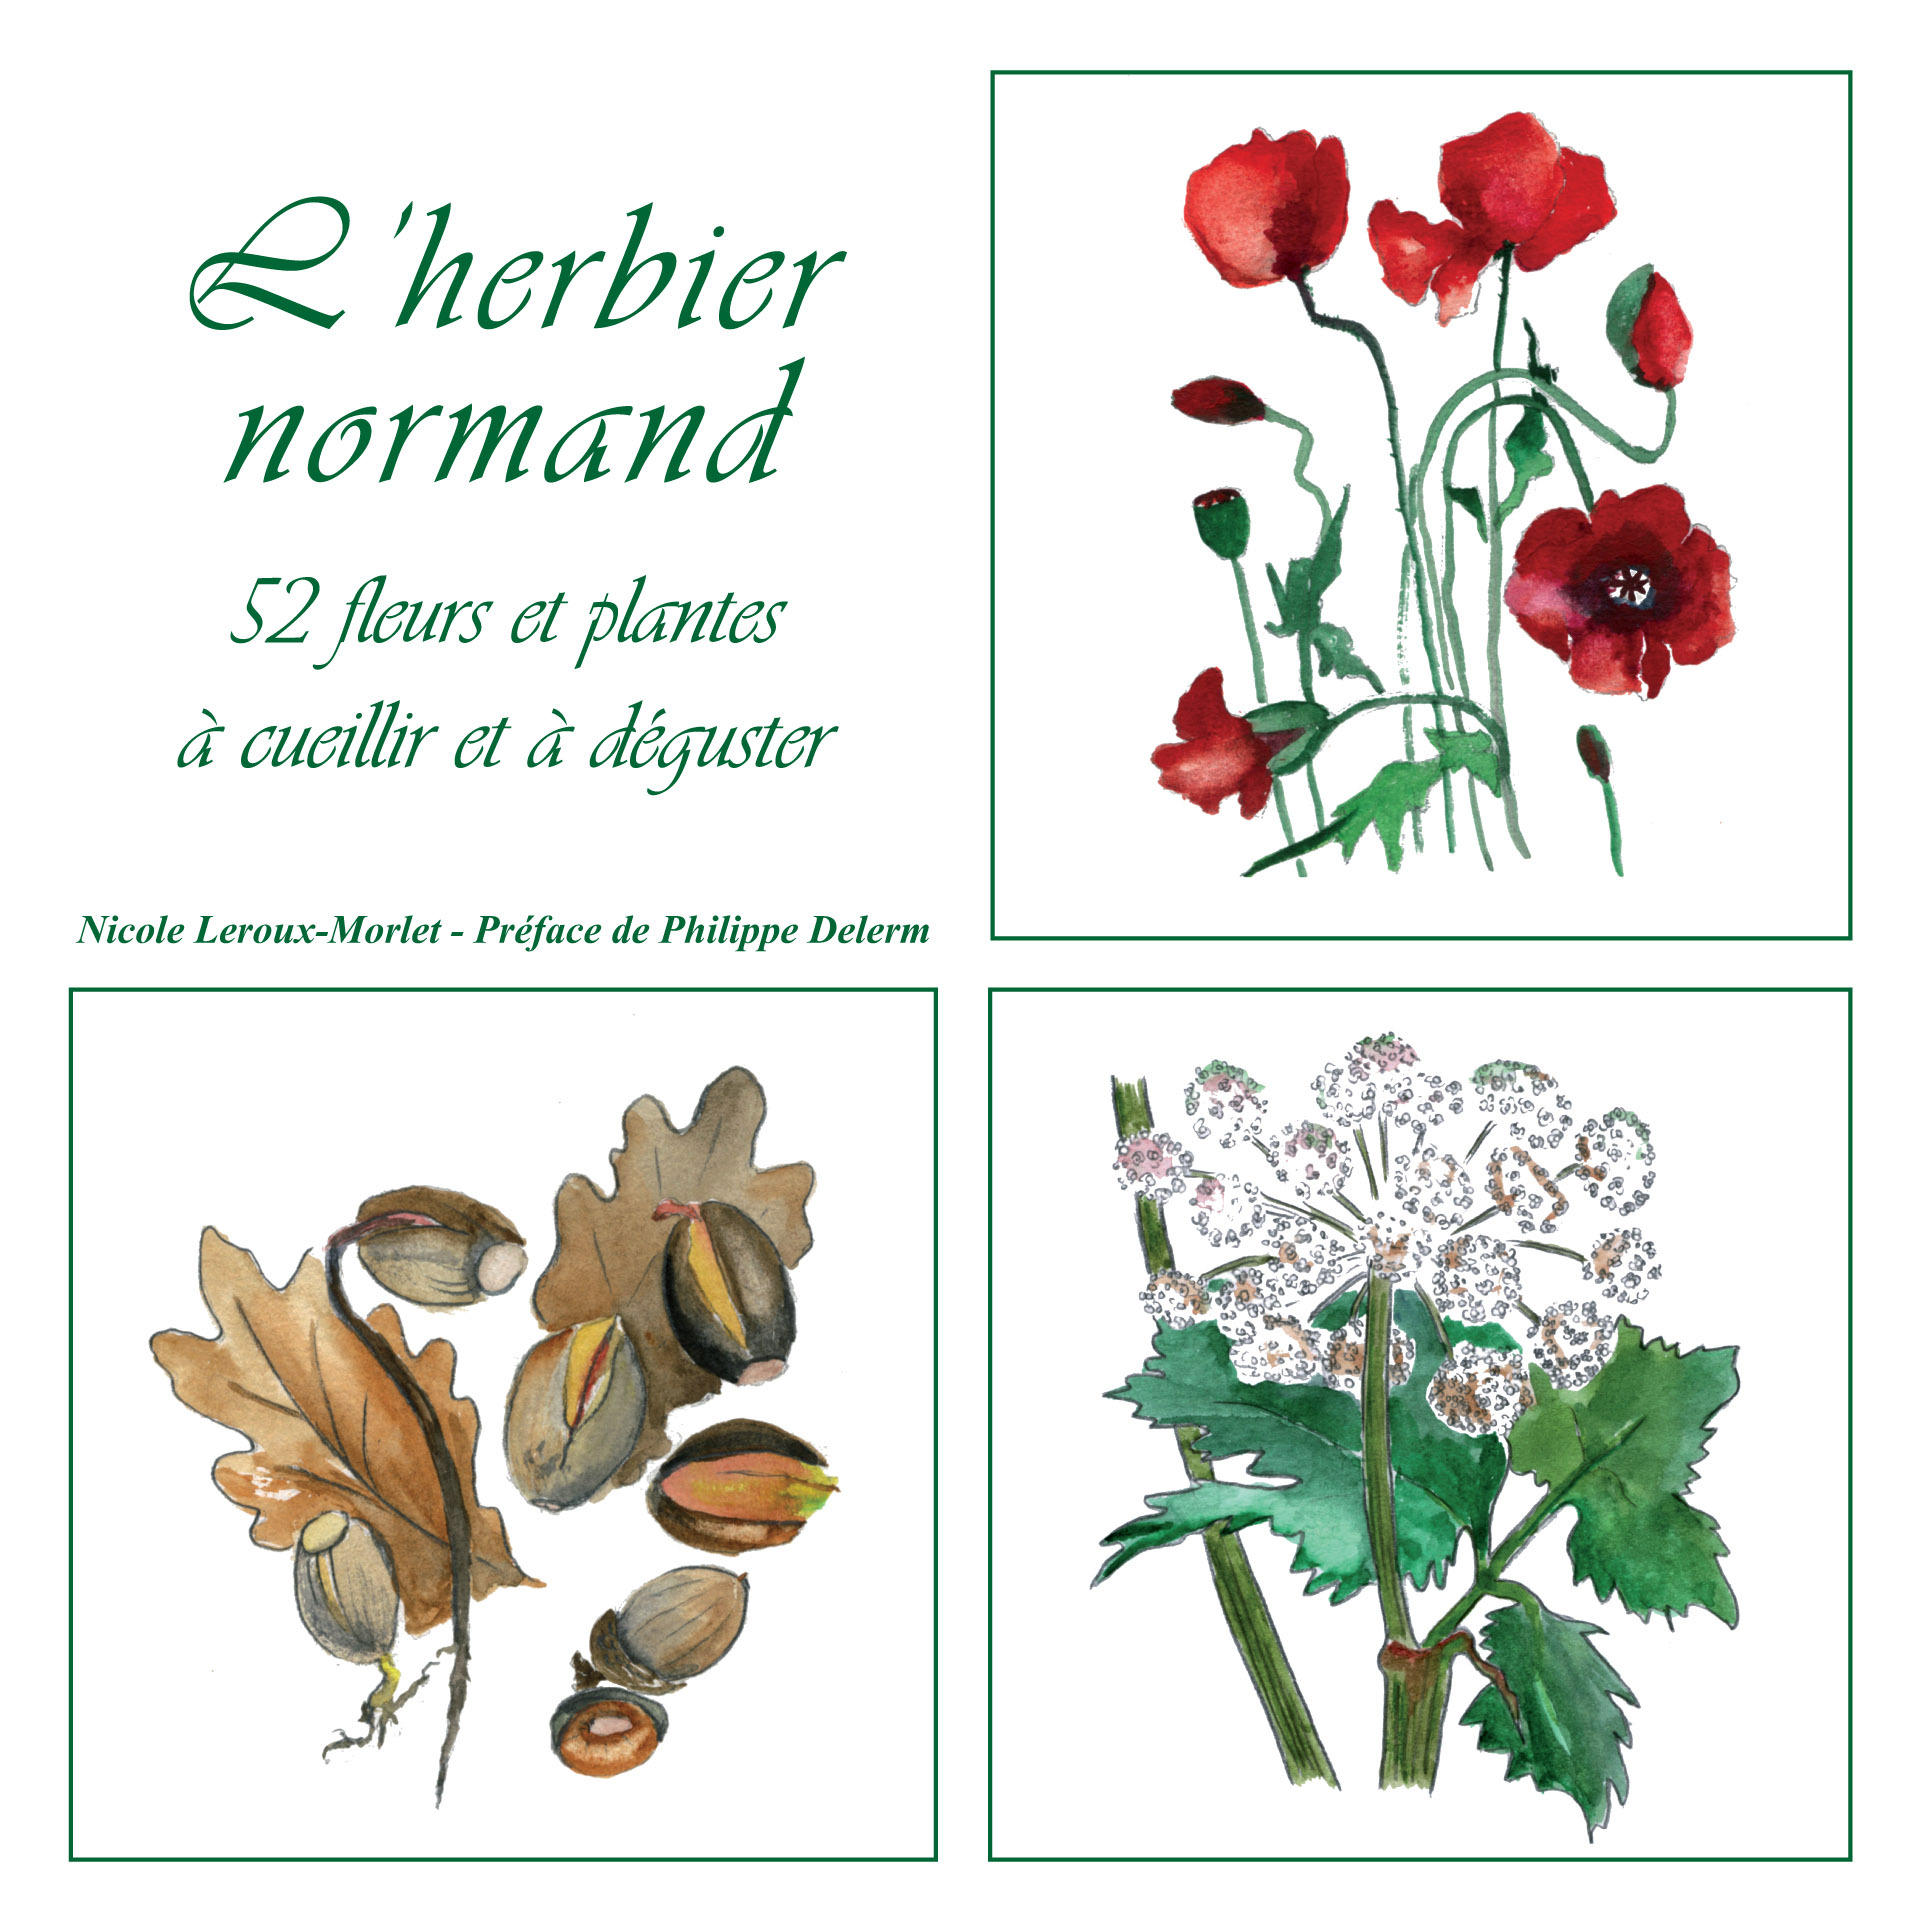 L'HERBIER NORMAND